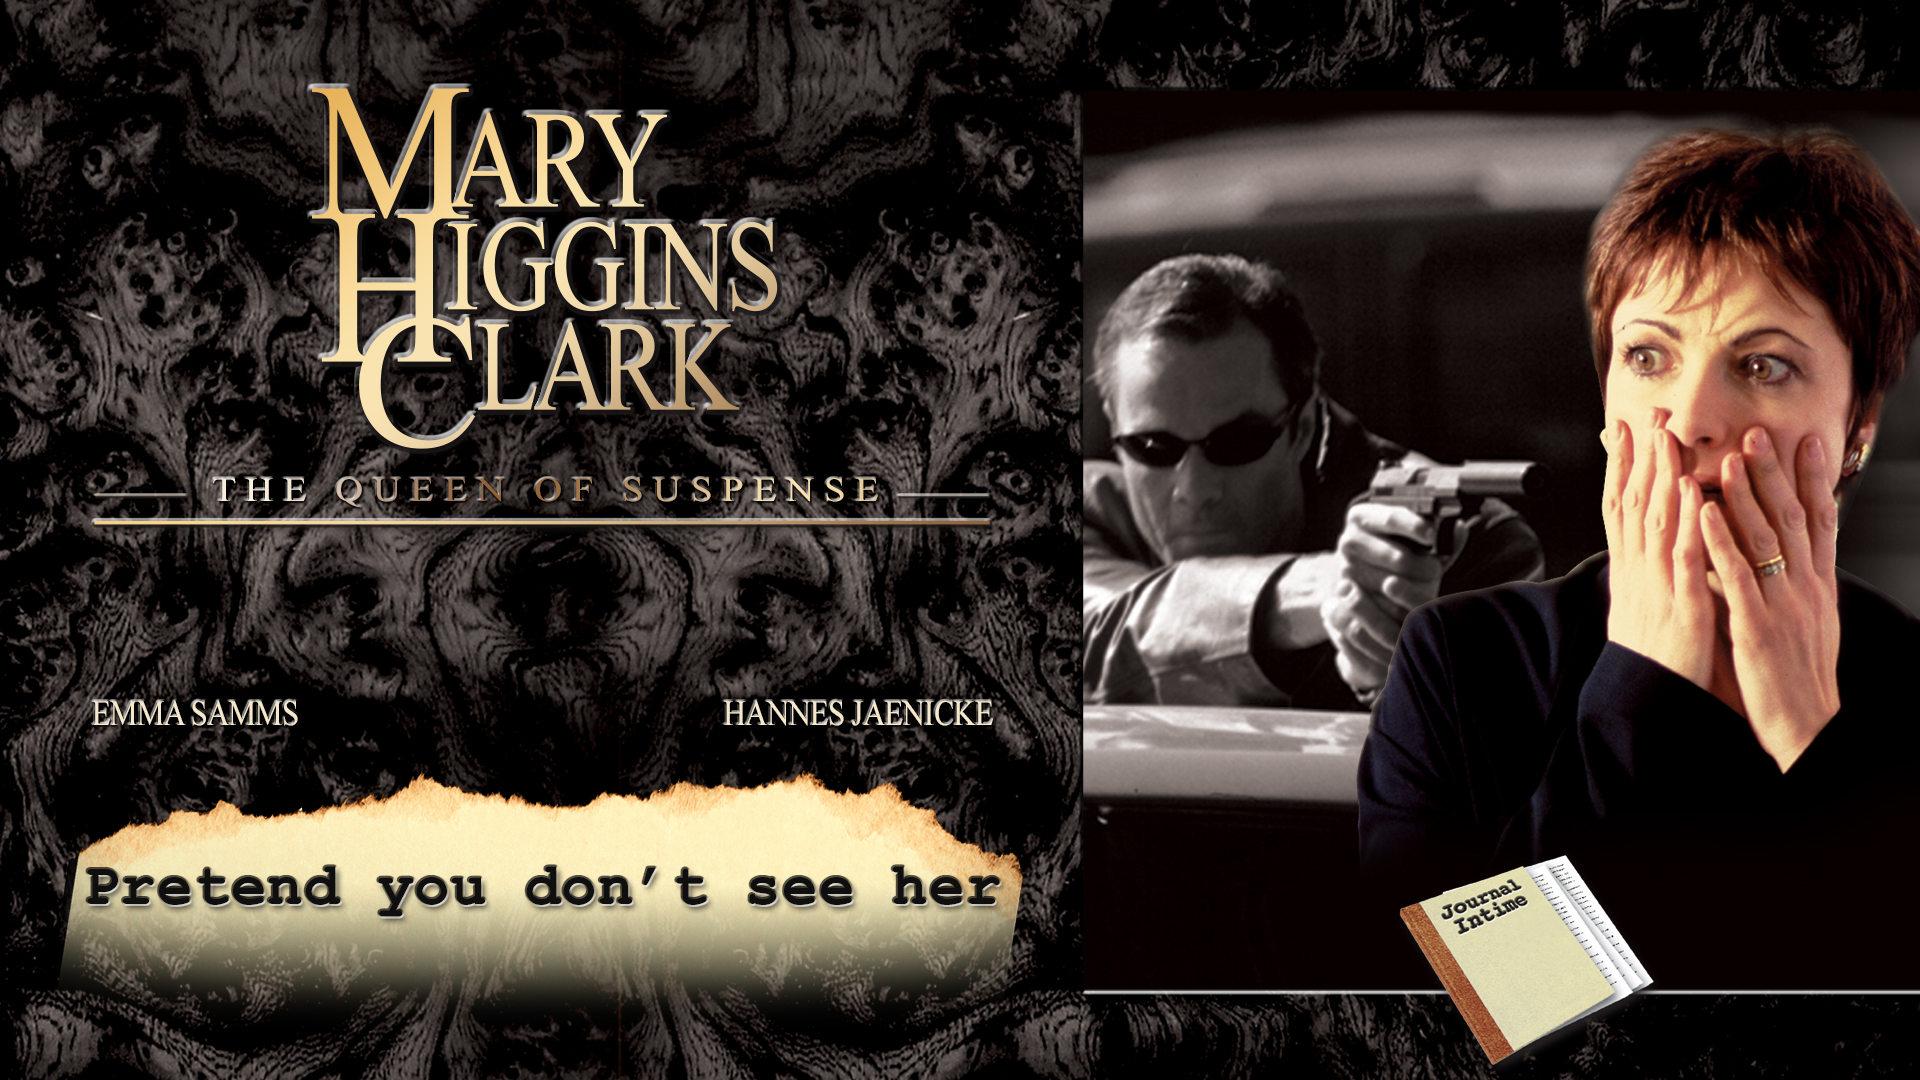 Mary Higgins Clark's: Pretend You Don't See Her